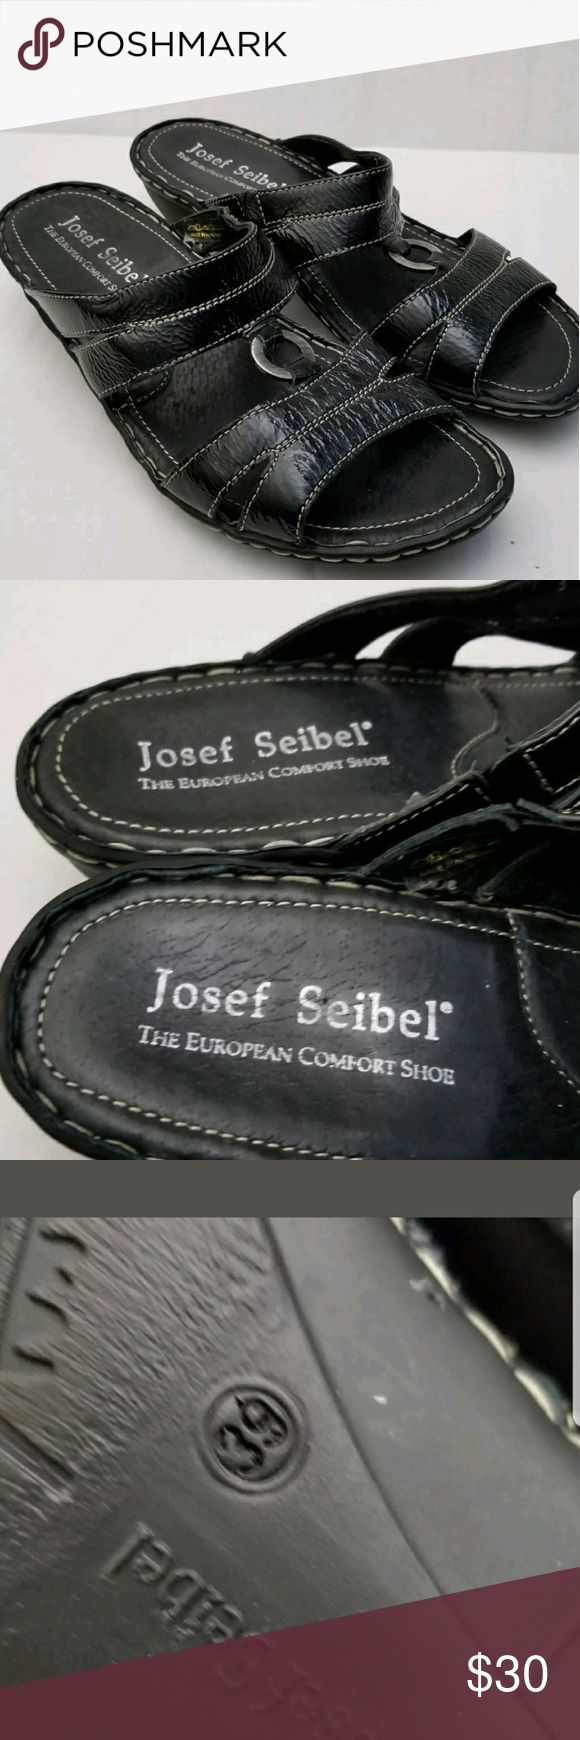 "Josef Seibel Black Leather Shoes 39 8.5 9 Sandals Josef Seibel Black Leather Sandals  Slide Slip-On  Womens Shoe Size 39 / 8.5  Non slip rubber bottoms  just under 2"" heels  Very nice clean condition  Non smoking home Josef Seibel Shoes Sandals"